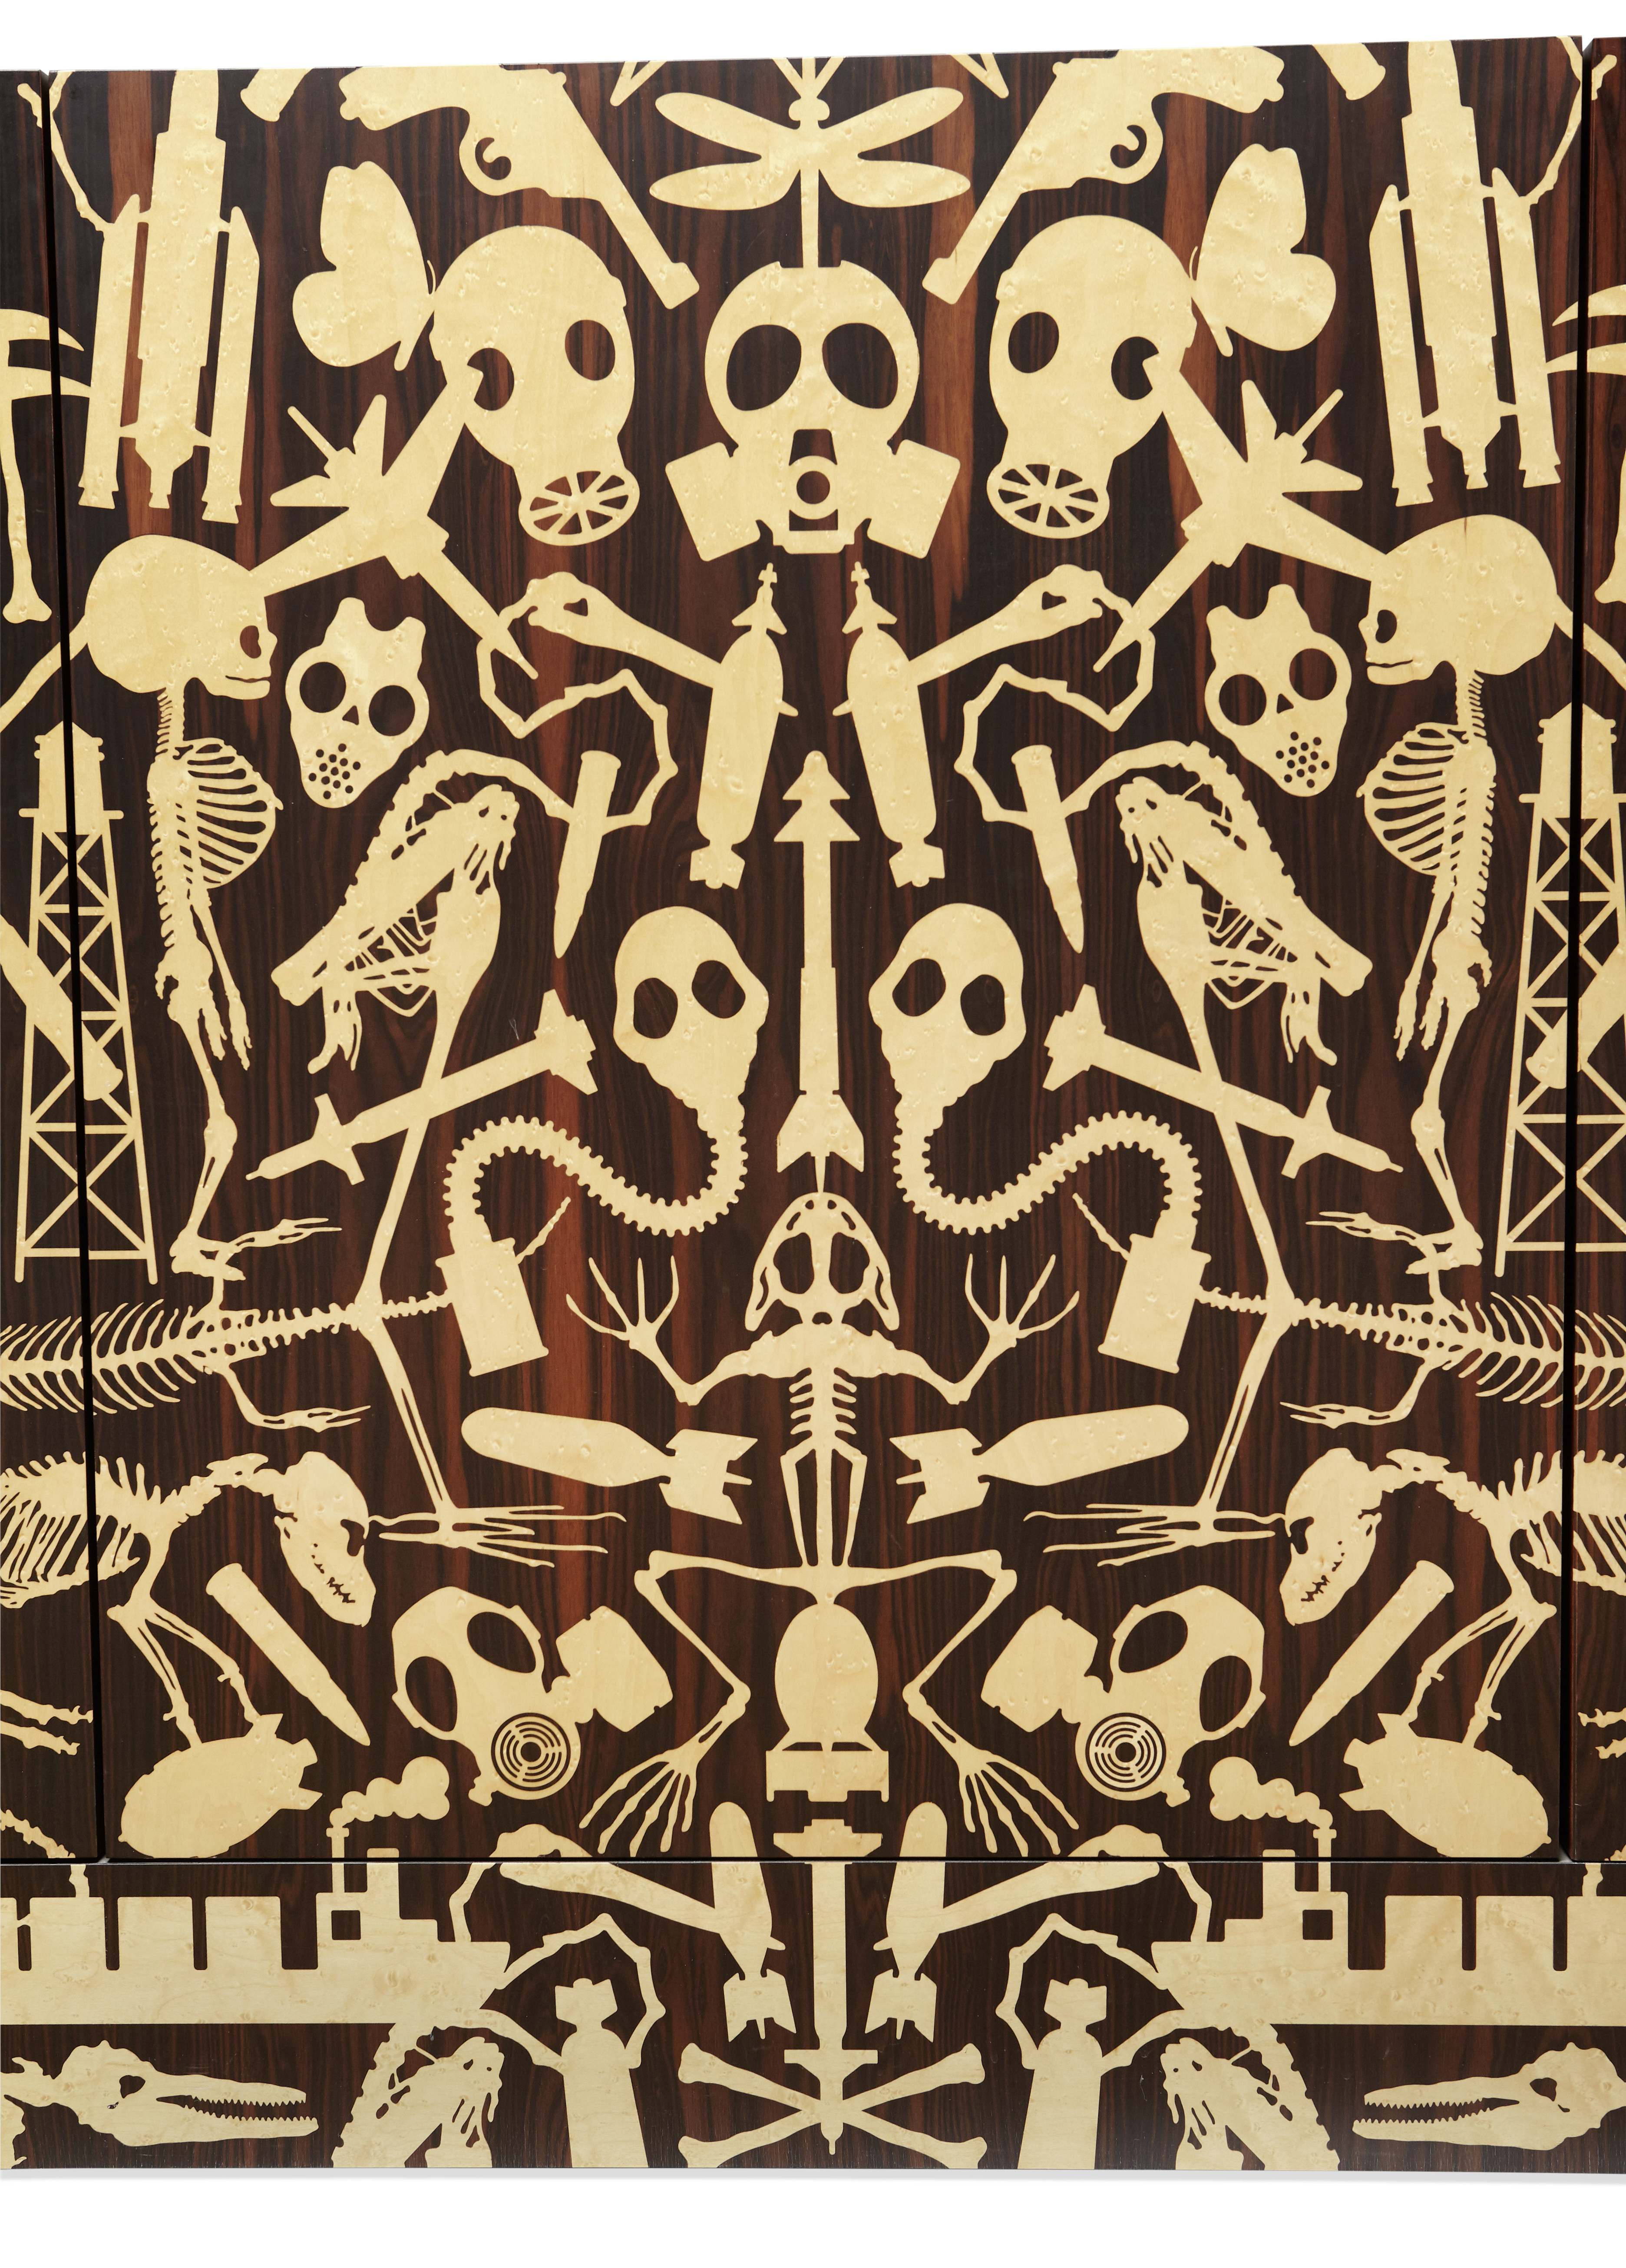 "A detail of the unique ""dressoir"" made by Studio Job in 2006 that combines imagery from its Perished and its Industry series. It is tightly crowded with bird's eye maple images of skeletons, bombs, butterflies, and gas masks on a Macassar ebony background."